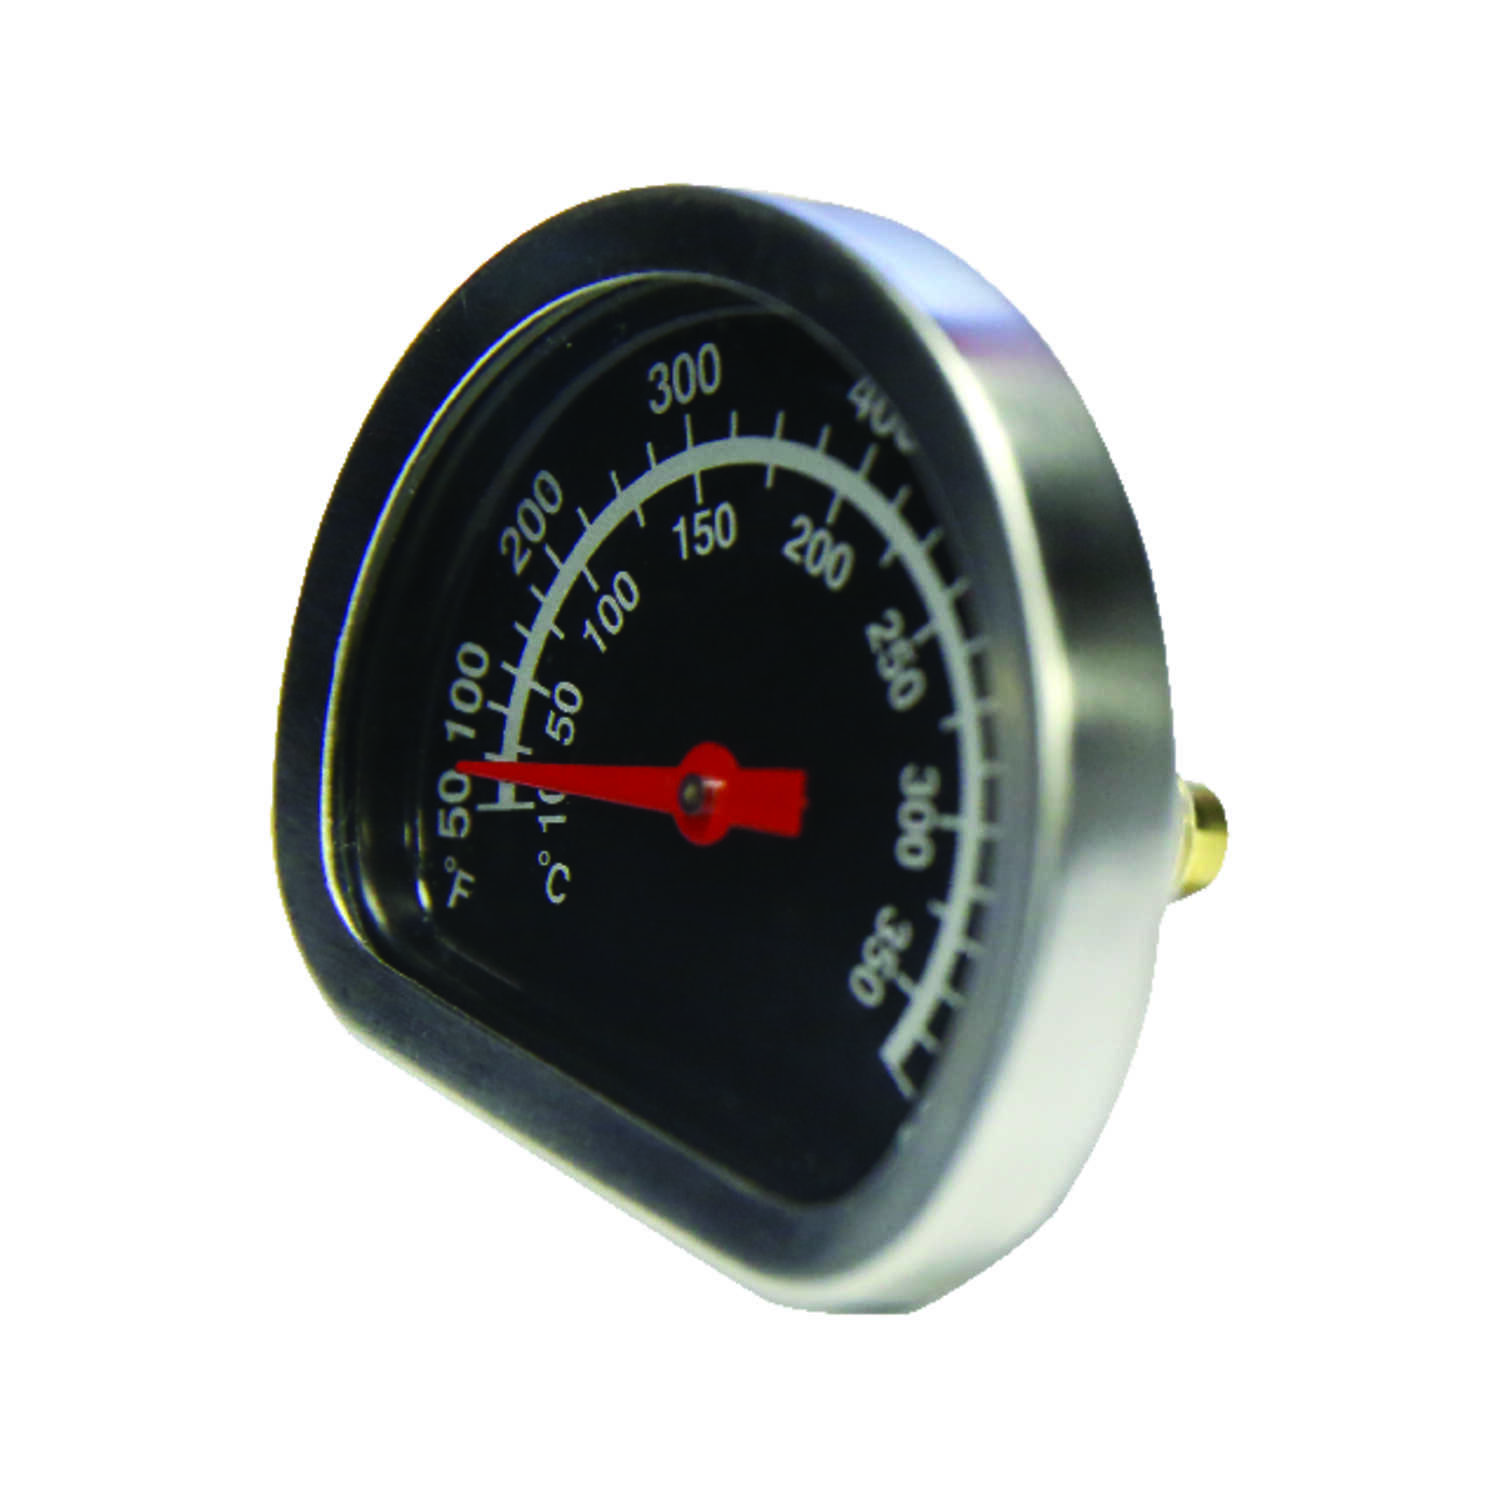 GrillMark  Stainless Steel  Grill Thermometer  Analog